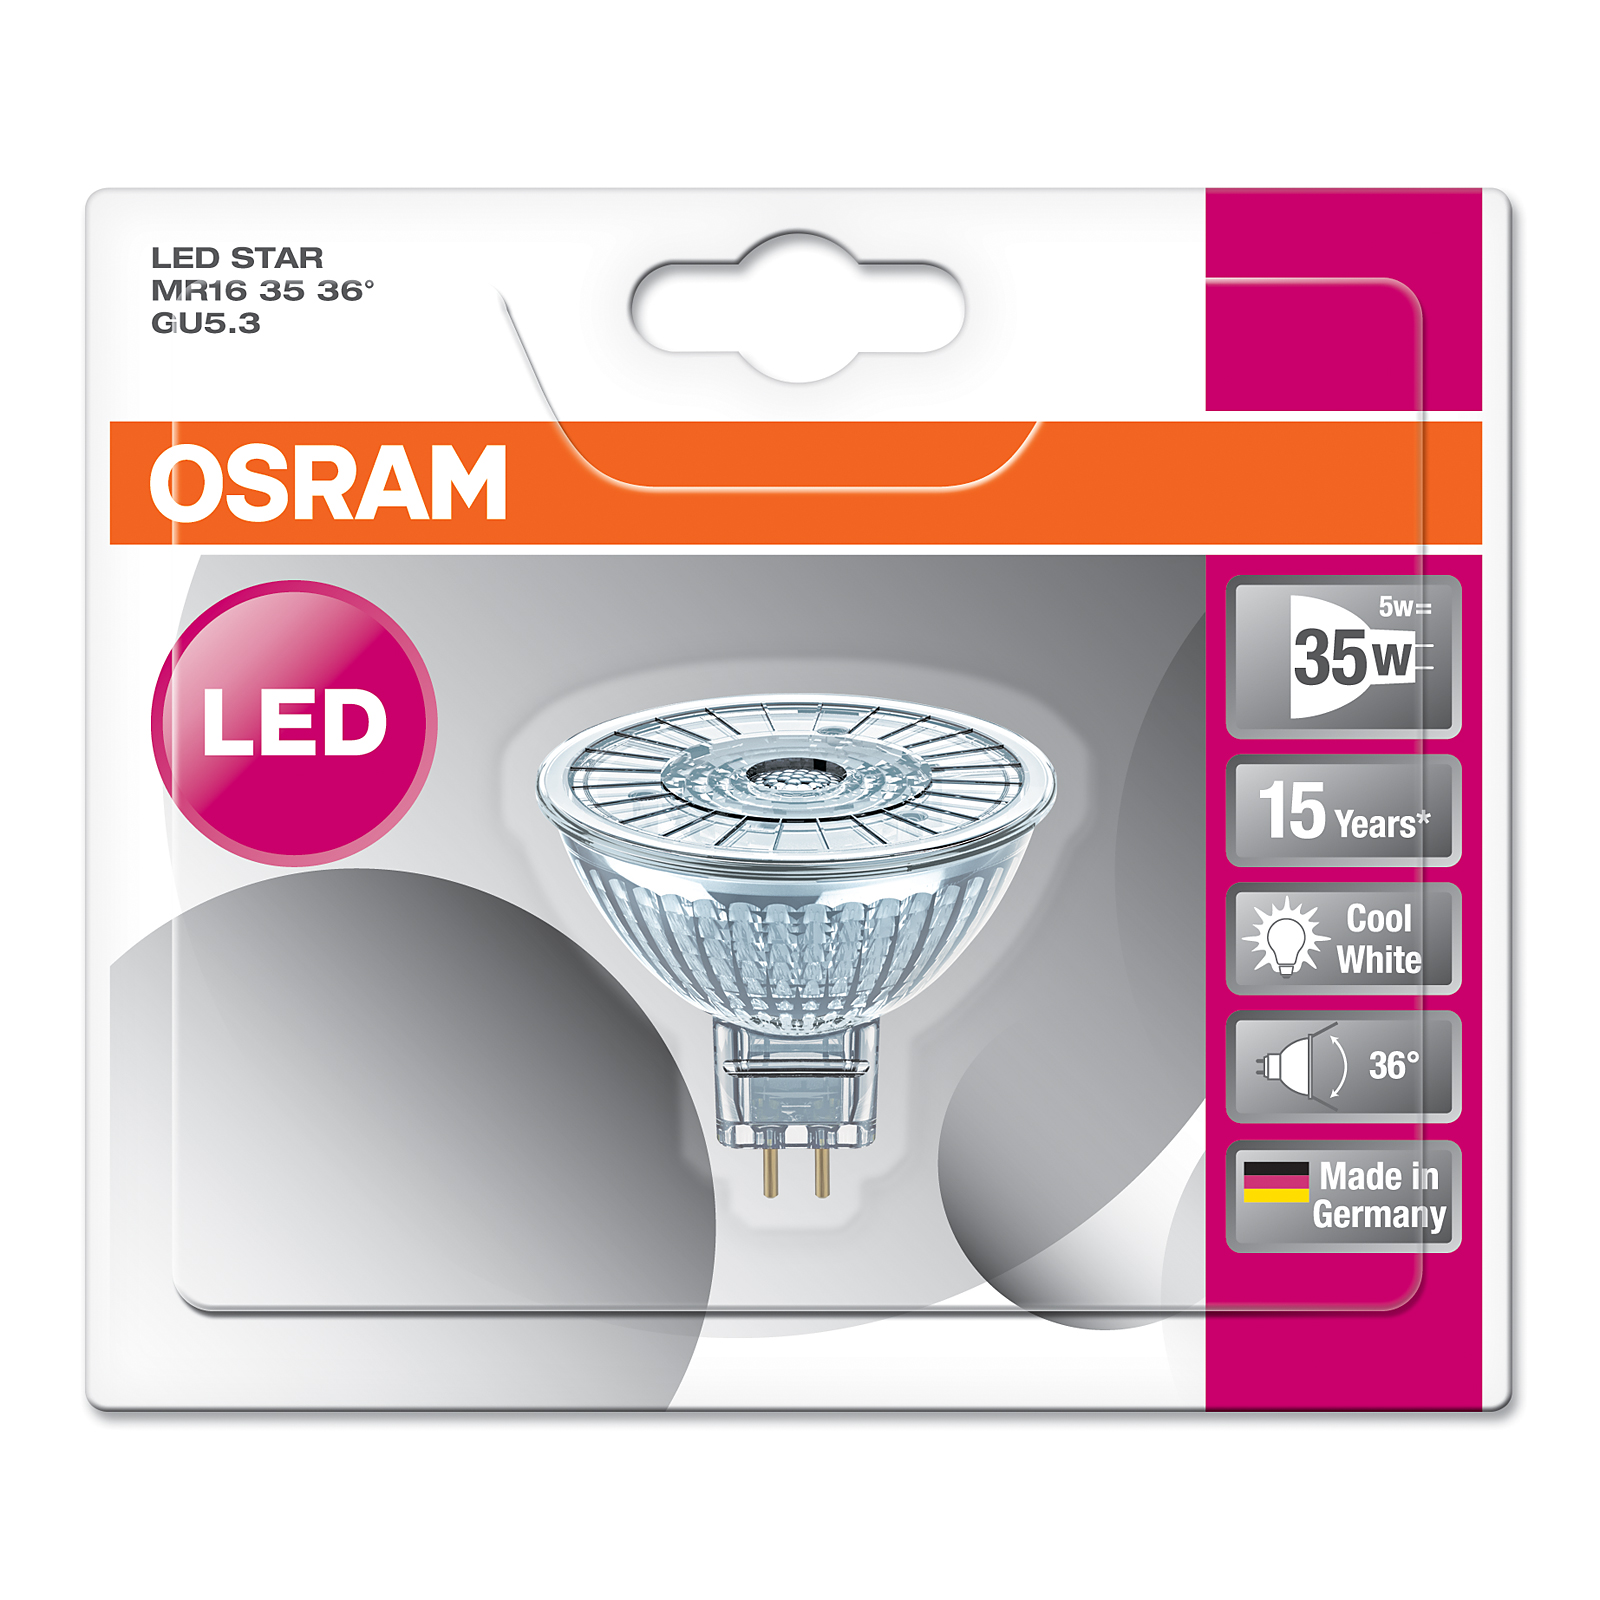 4er osram led star mr16 gu5 3 5 w wie 35 w 350 lm. Black Bedroom Furniture Sets. Home Design Ideas